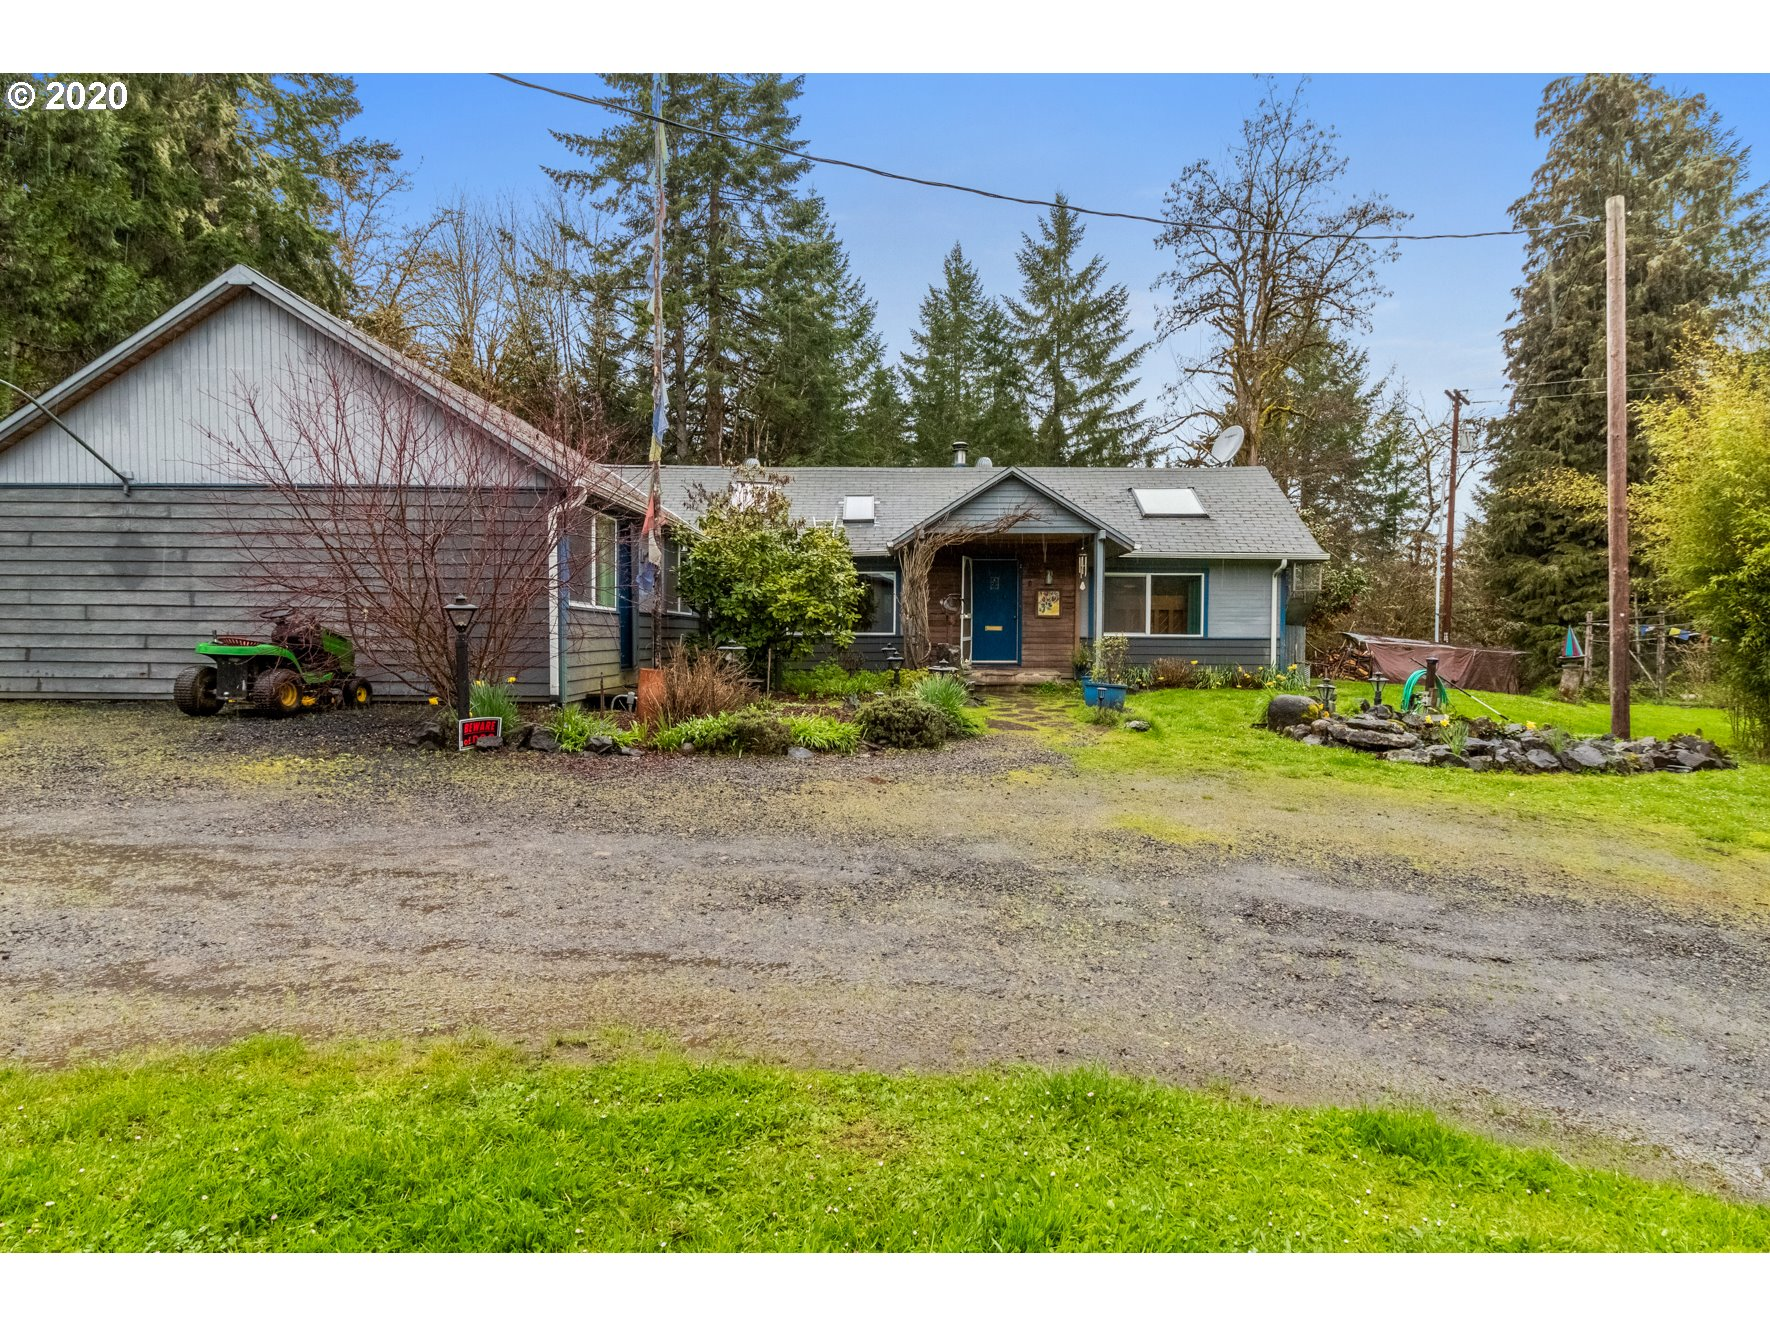 235 JACOB ACRES LN, Cottage Grove OR 97424